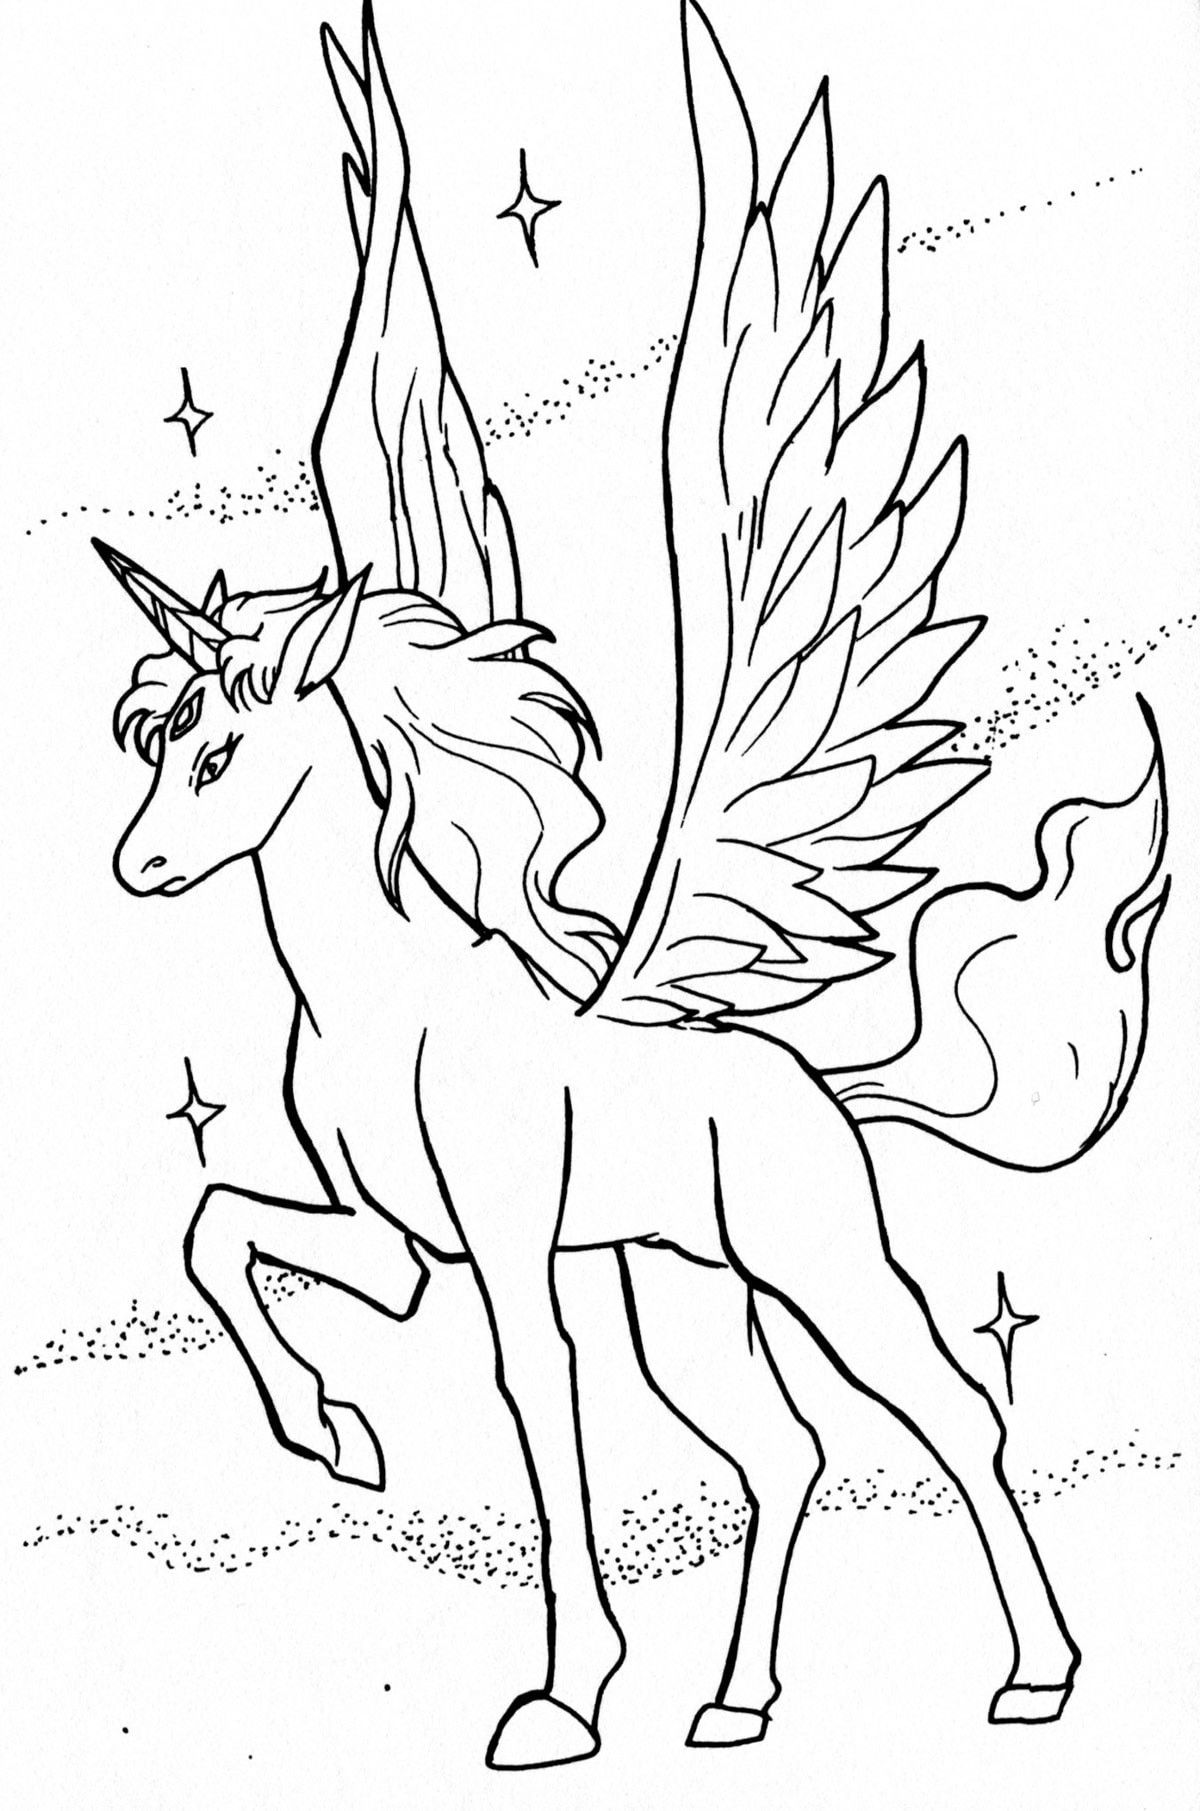 Flying Unicorn Coloring Page Youngandtae Com Sailor Moon Coloring Pages Moon Coloring Pages Unicorn Coloring Pages